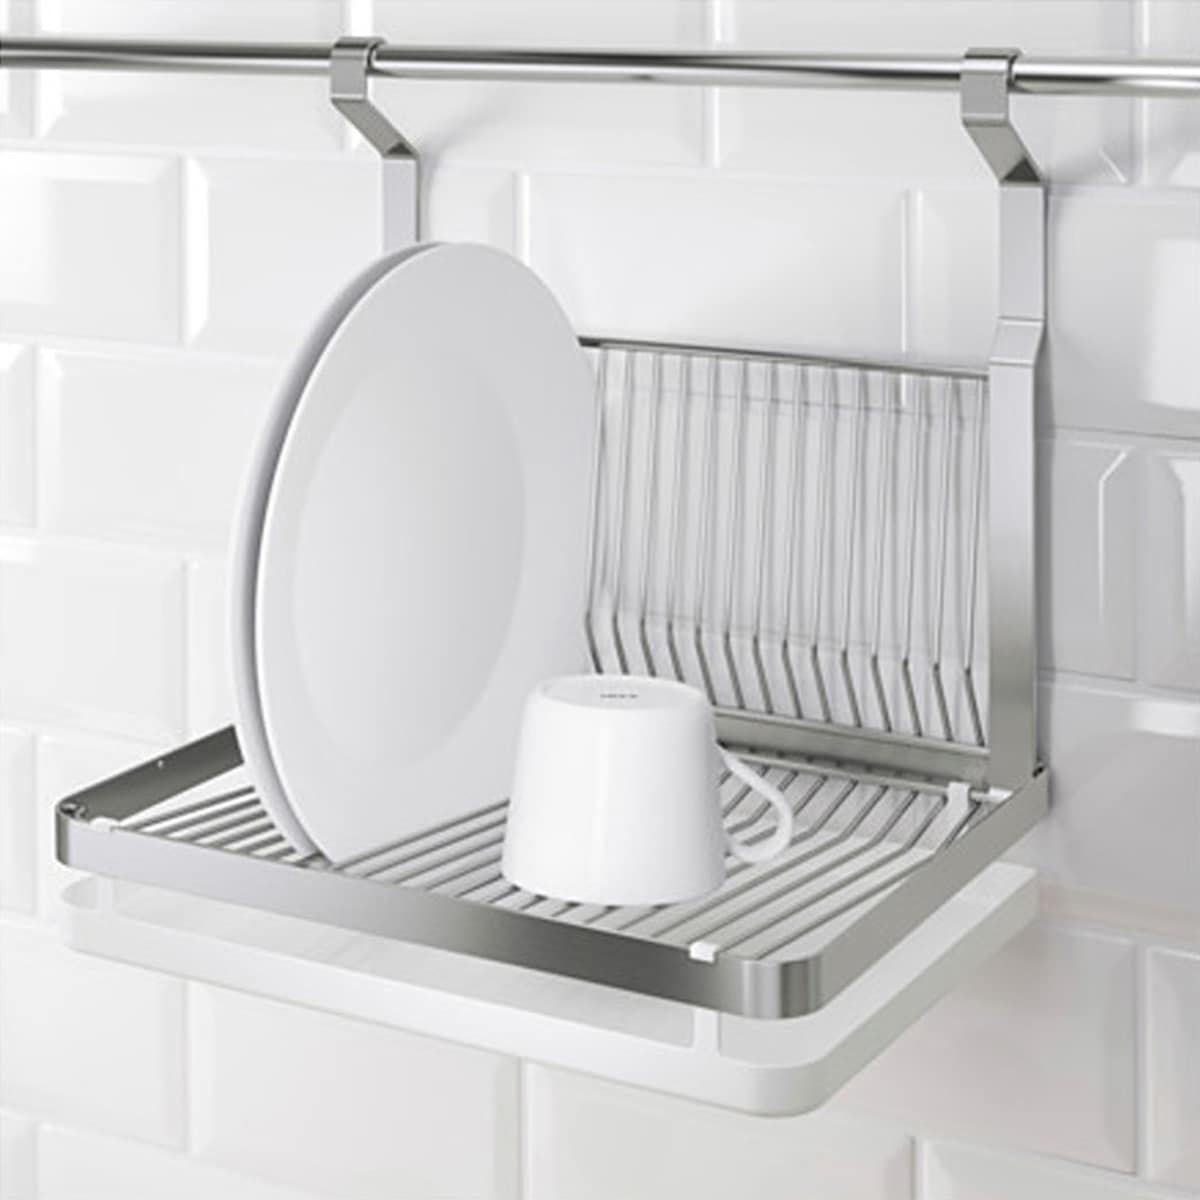 10 Dish Drying Racks That Are Better than a Tea Towel: gallery image 5